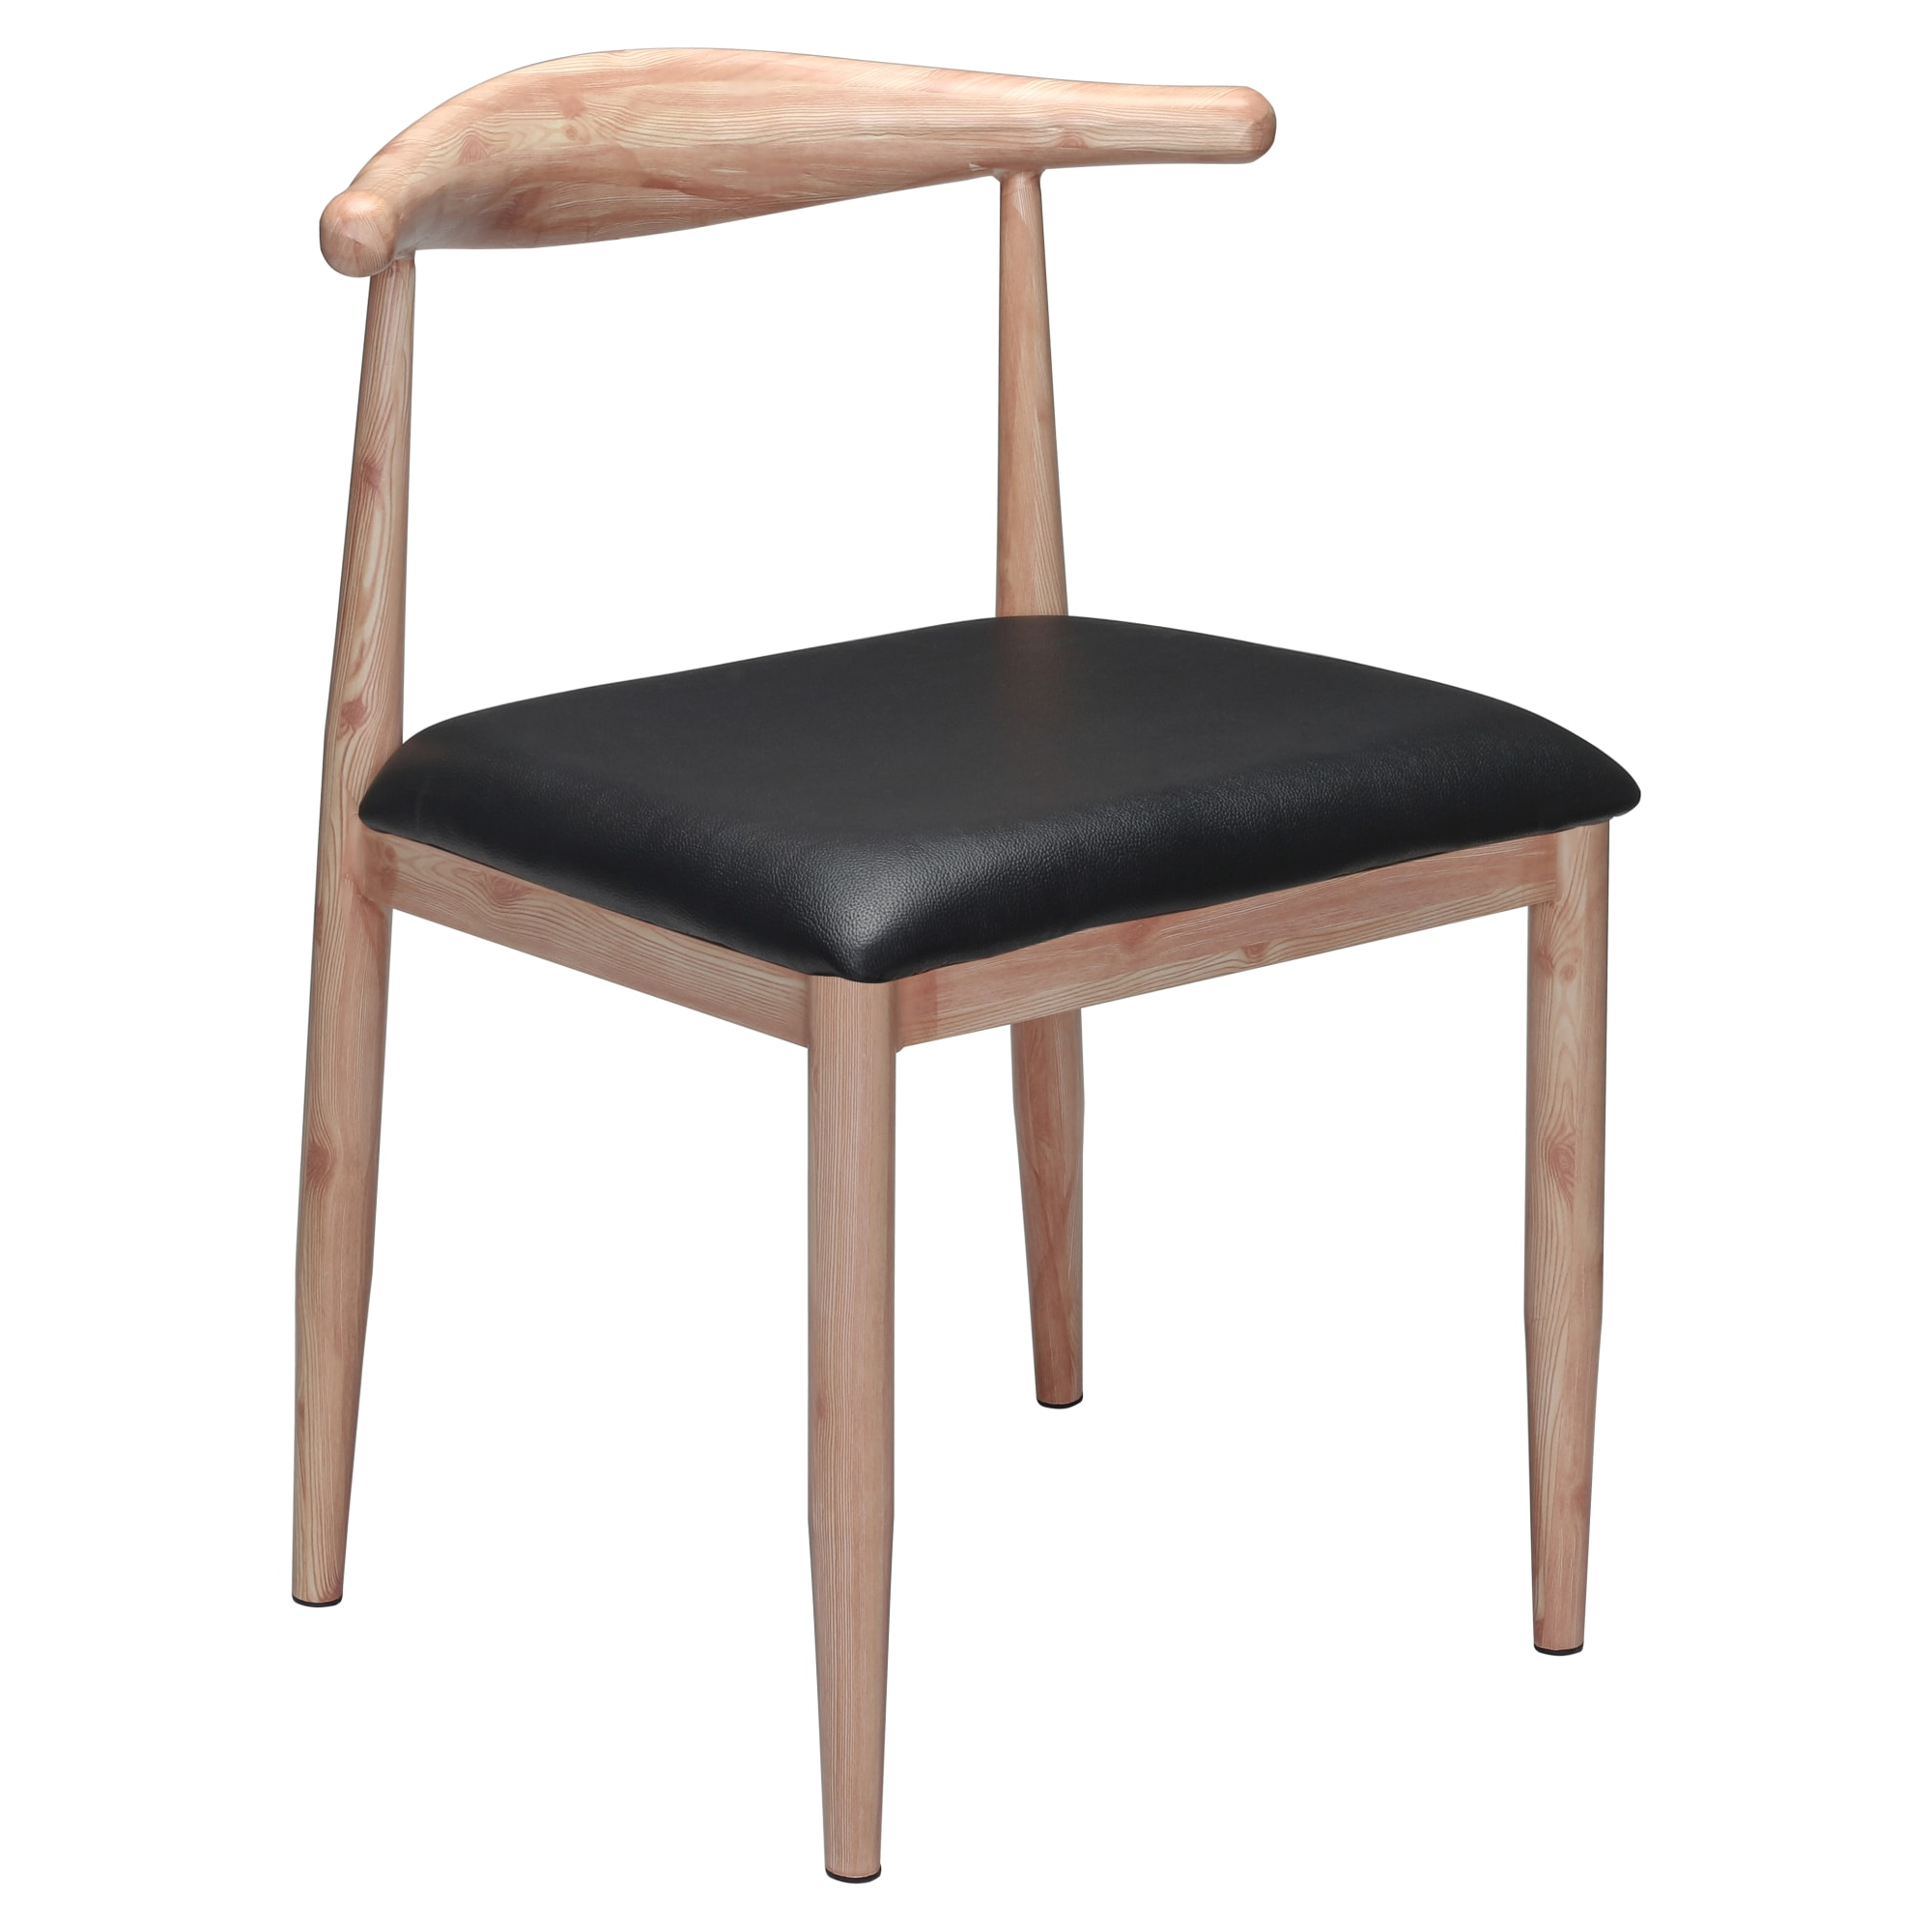 Wood Grain Metal Chair in Natural Finish with Black Vinyl Seat with Wood Grain Metal Chair in Natural Finish with Black Vinyl Seat